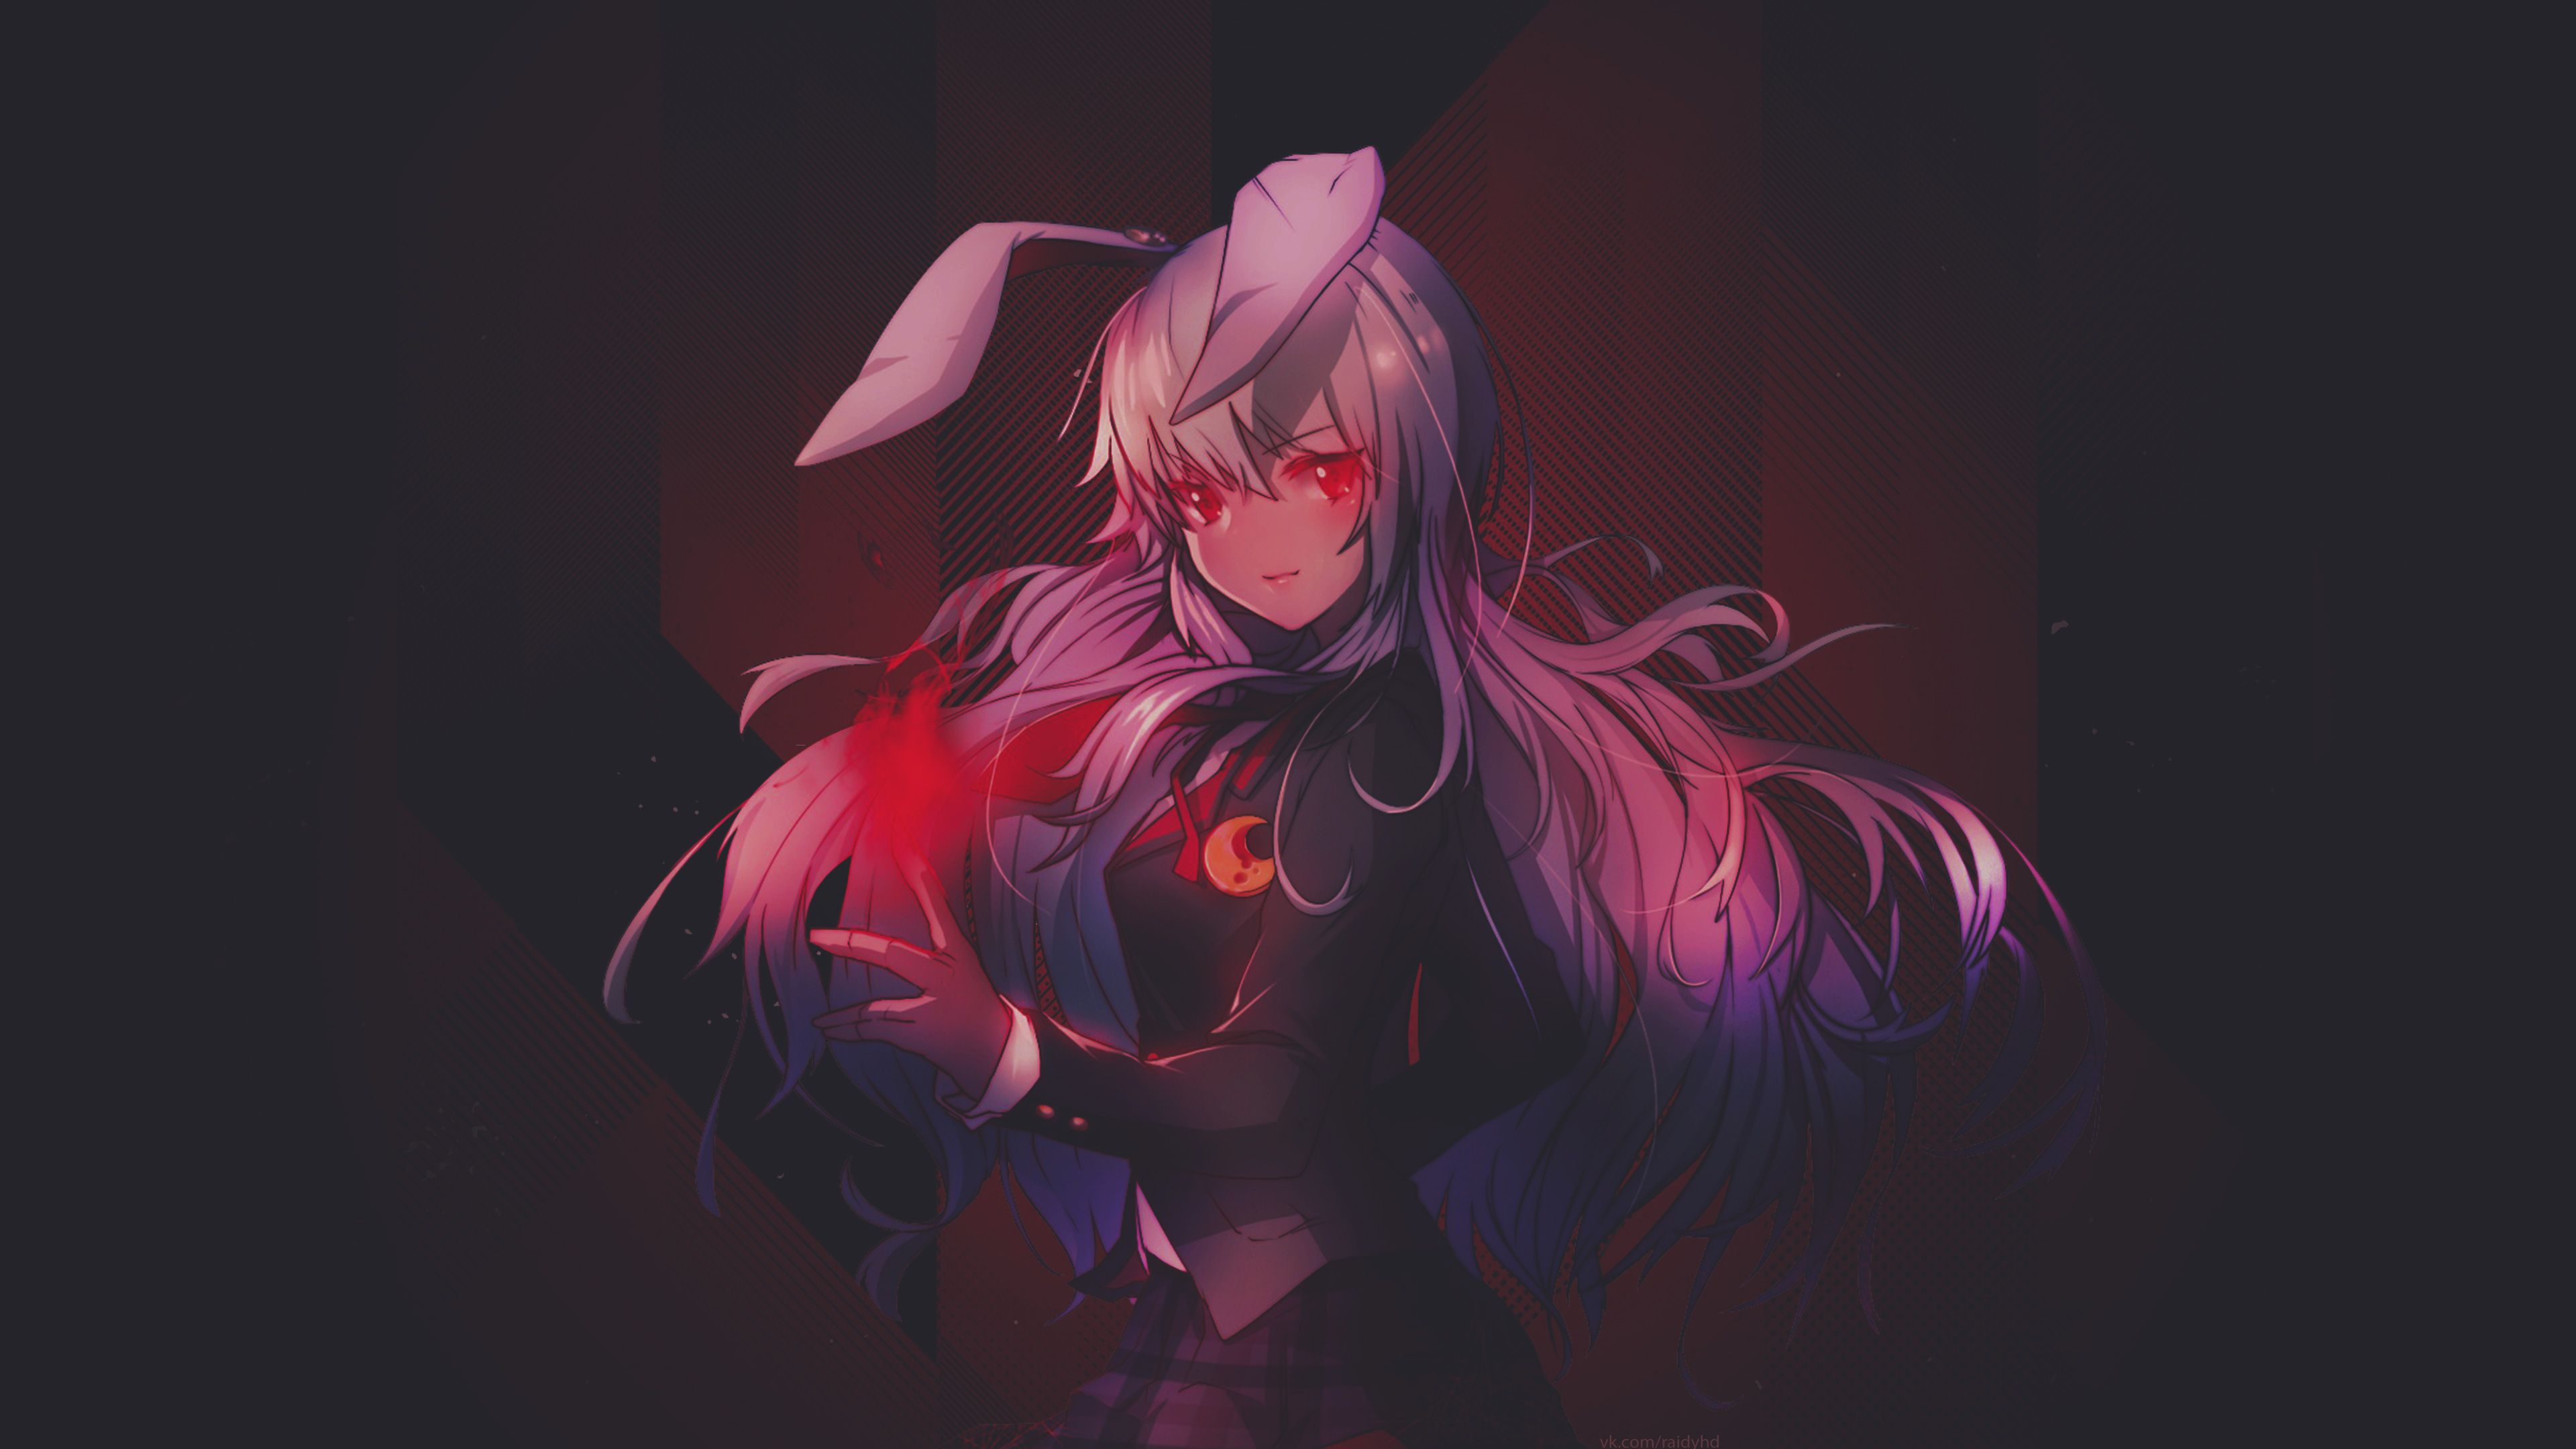 Dark Anime Wallpapers Wallpaper Cave With Images Anime